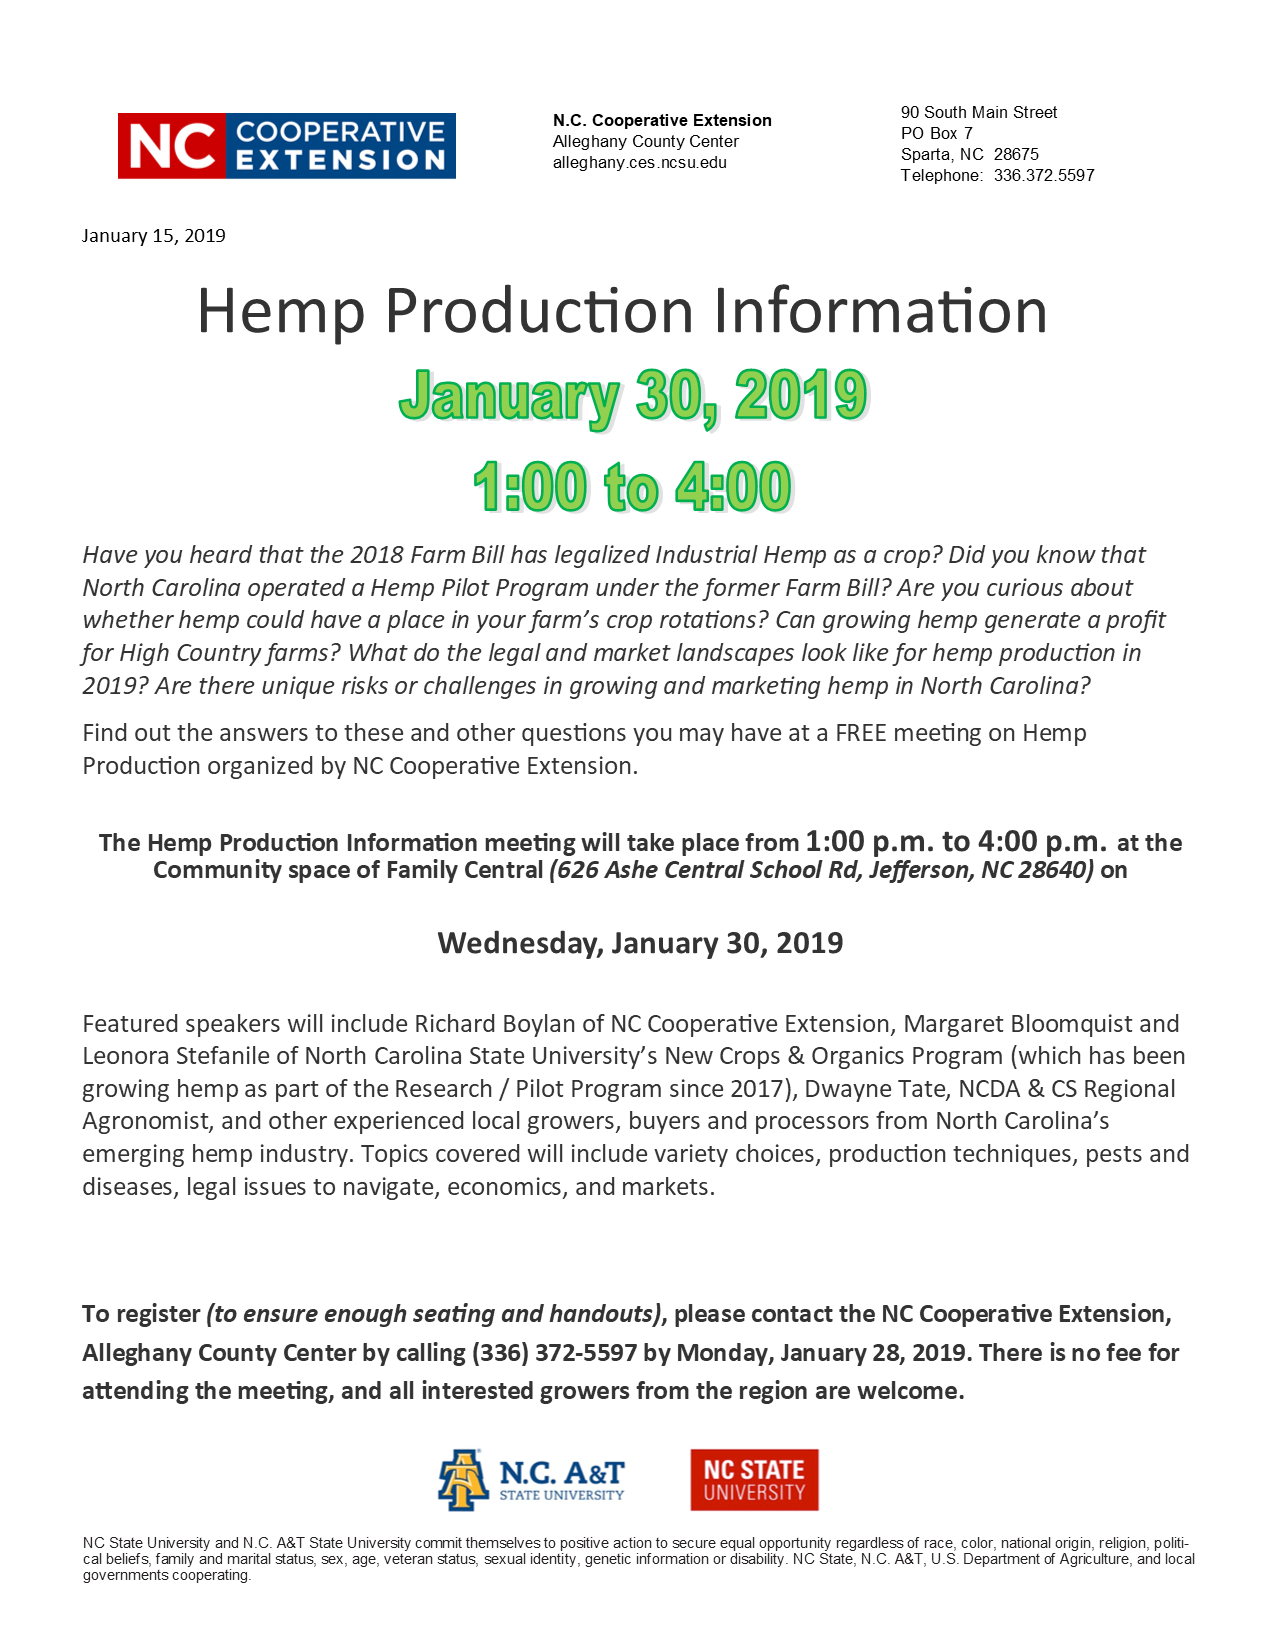 Hemp production information flyer image